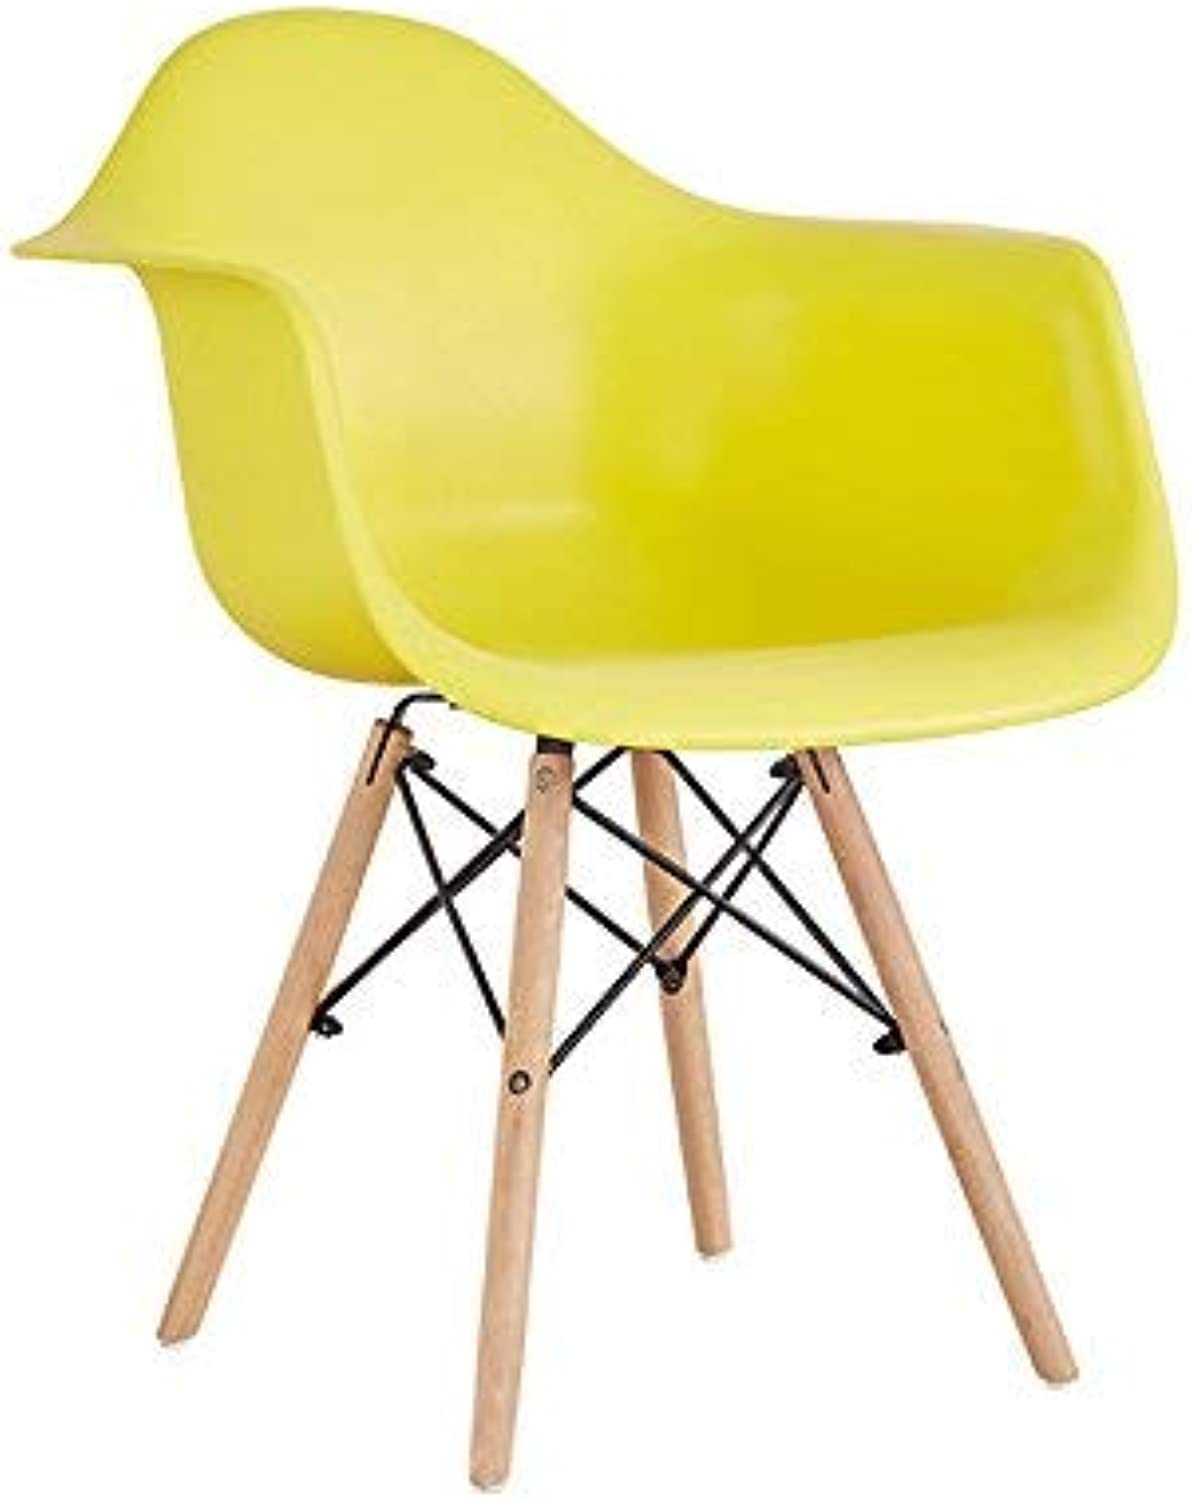 SED Chair - Lounge Chair Dining Chair Conference Chair Creative Wooden Chair Simple Style Adult Home Stool